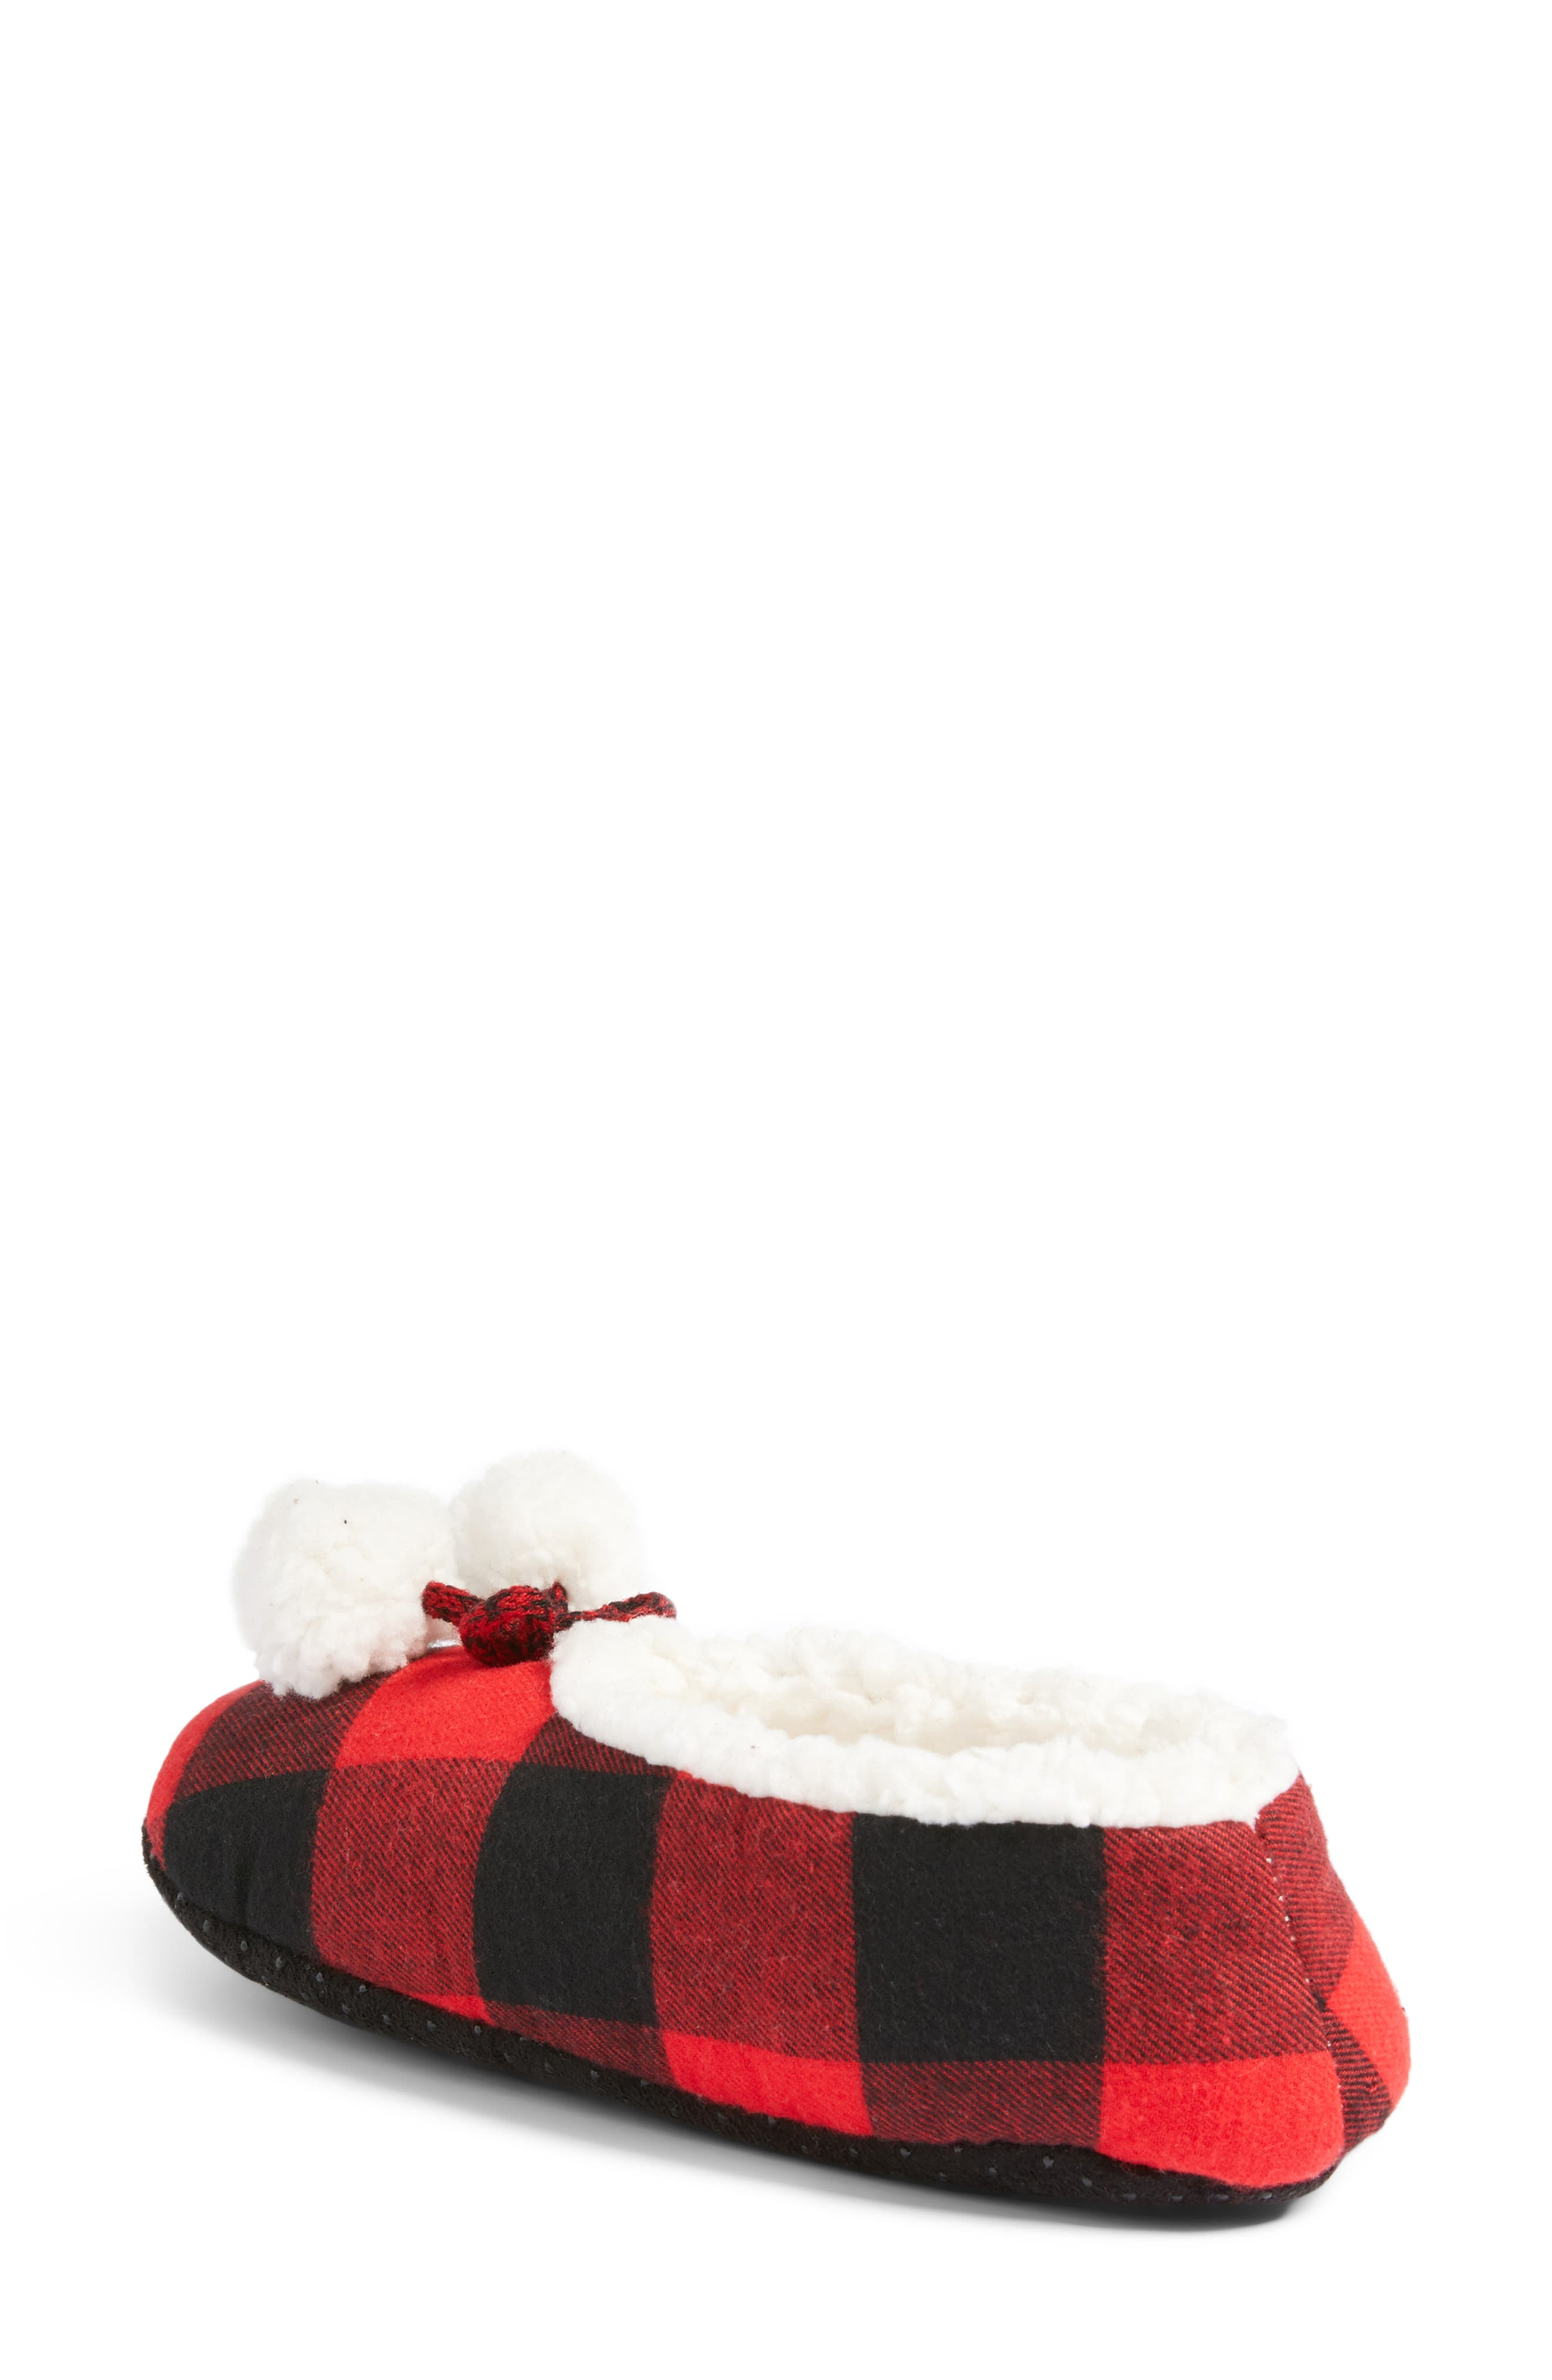 Alternate Image 2  - Make + Model Plaid Slippers